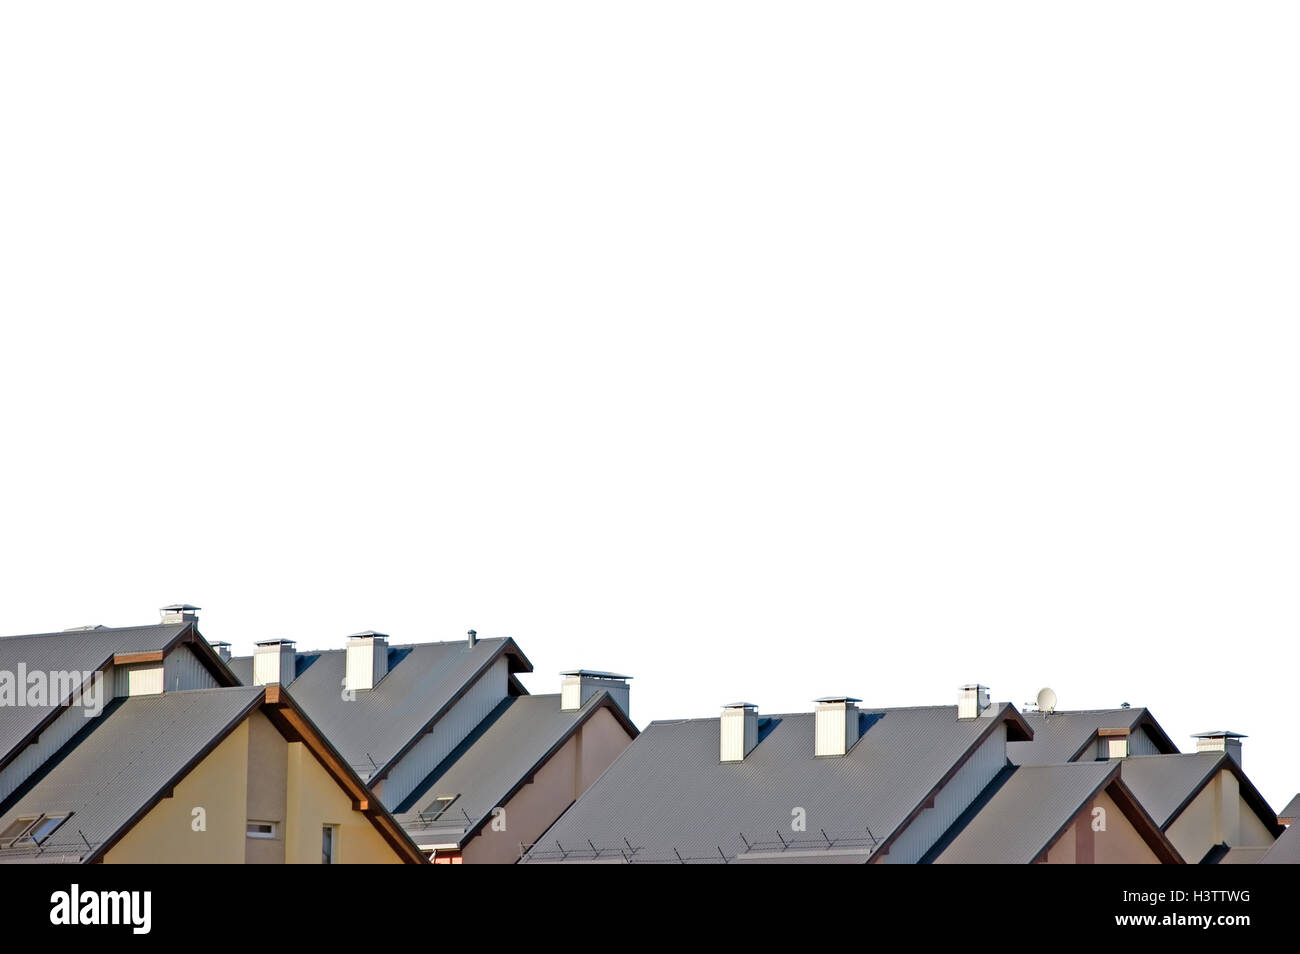 Rowhouse Roofs Panorama, Isolated Rooftops, Panoramic Copy Space, Row House Apartments, Modern Condos Rooftop Group - Stock Image